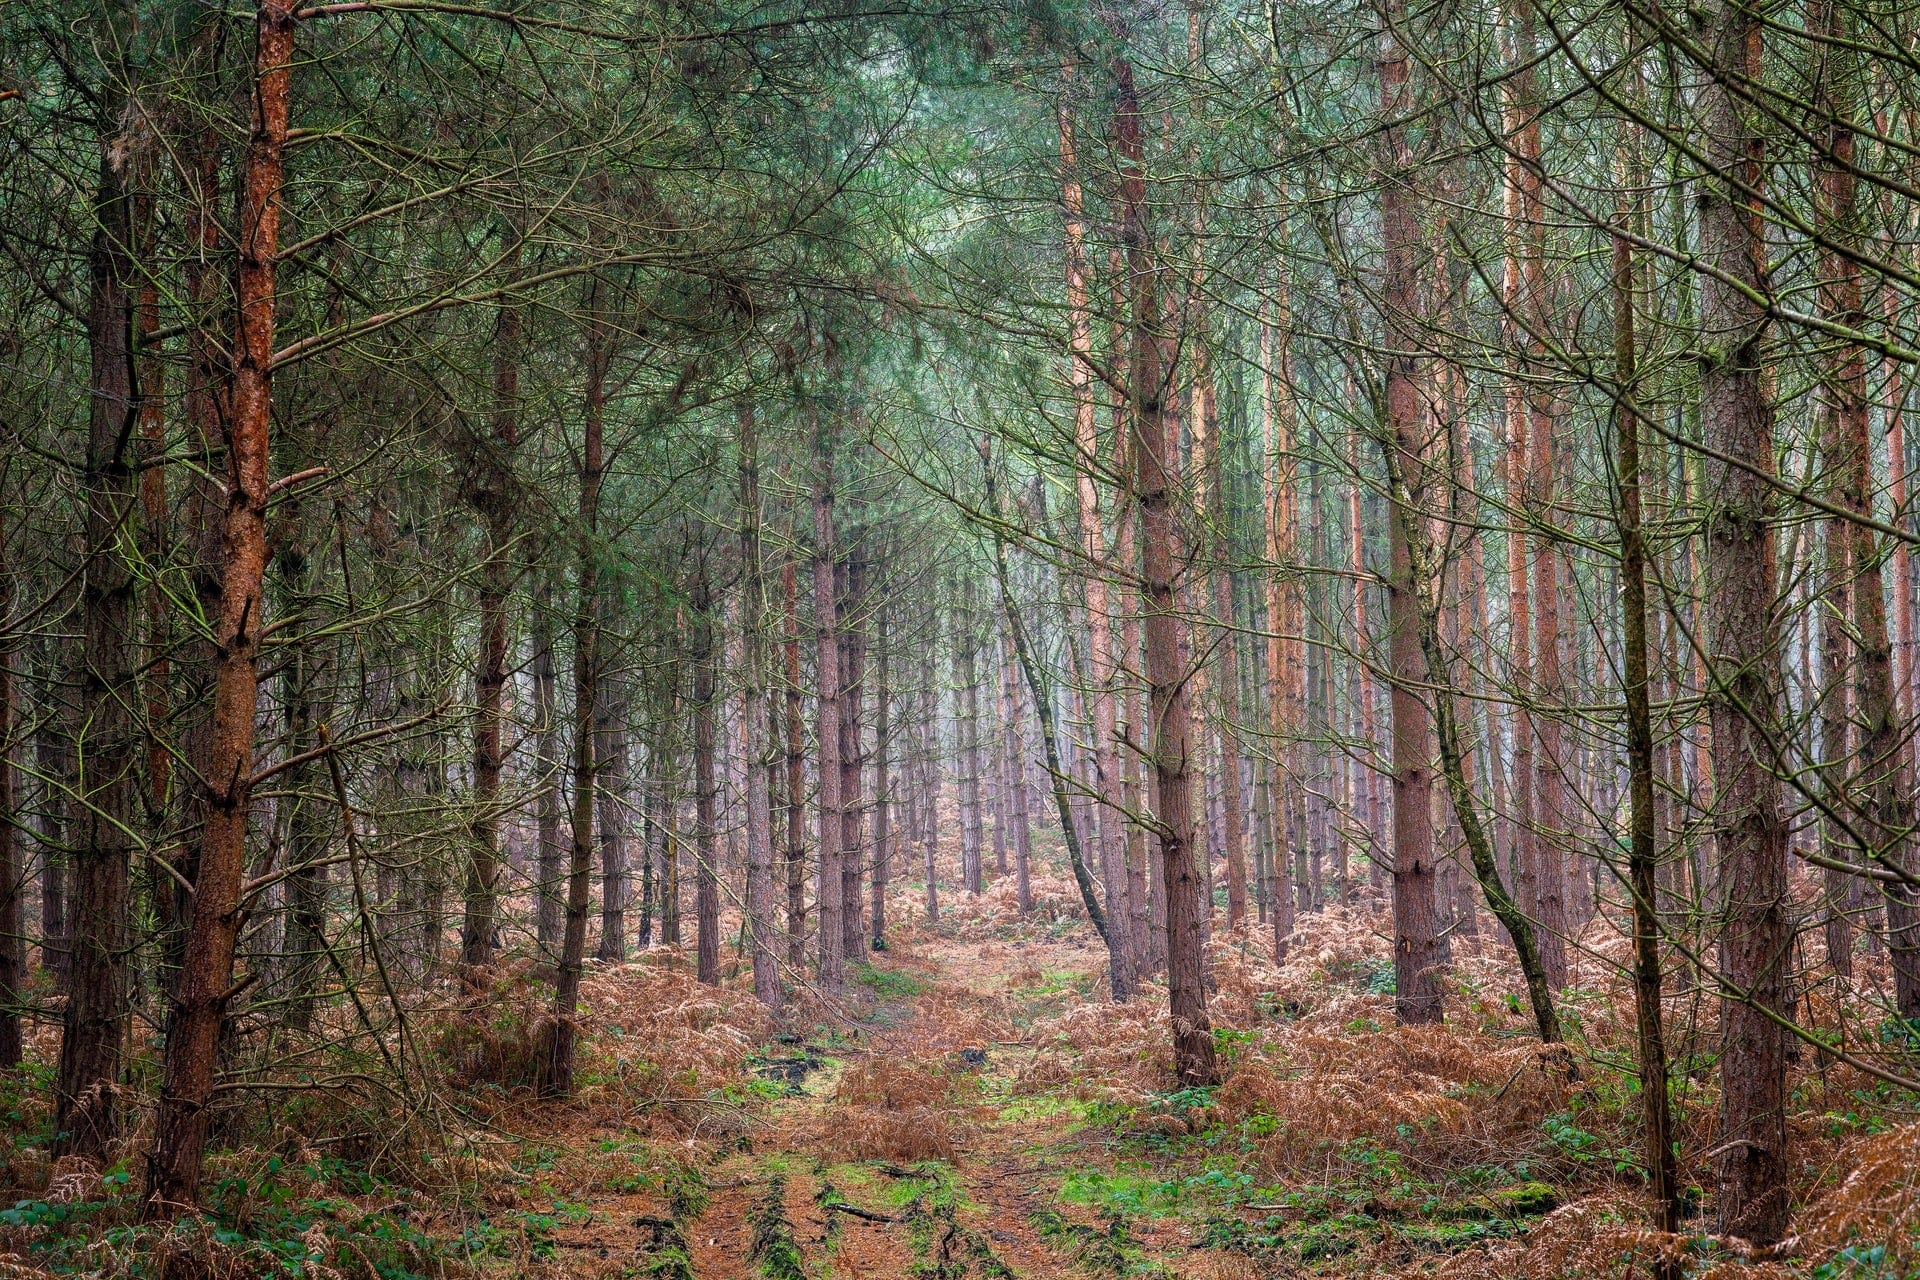 forest-path-leading-through-pine-trees-sherwood-forest-nottingham